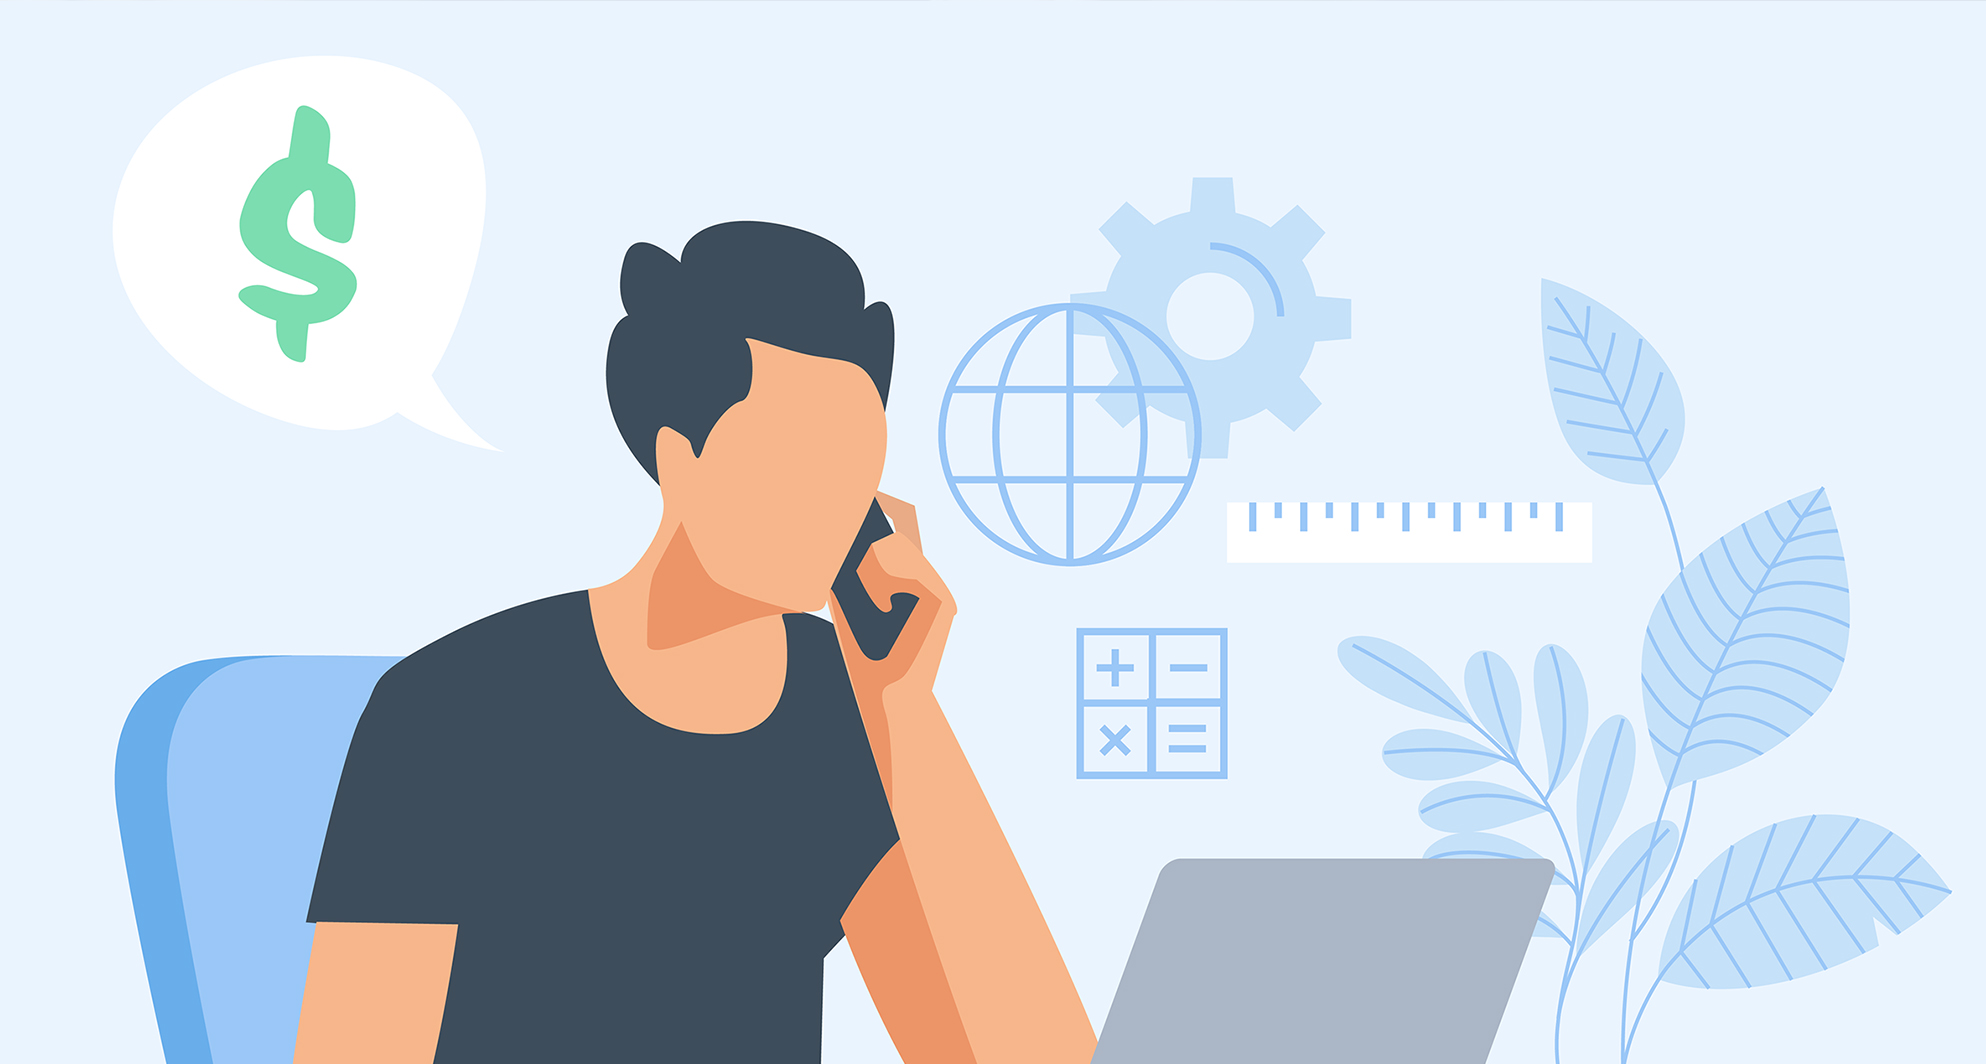 Vector illustration of a man discussing money on the phone while on his computer